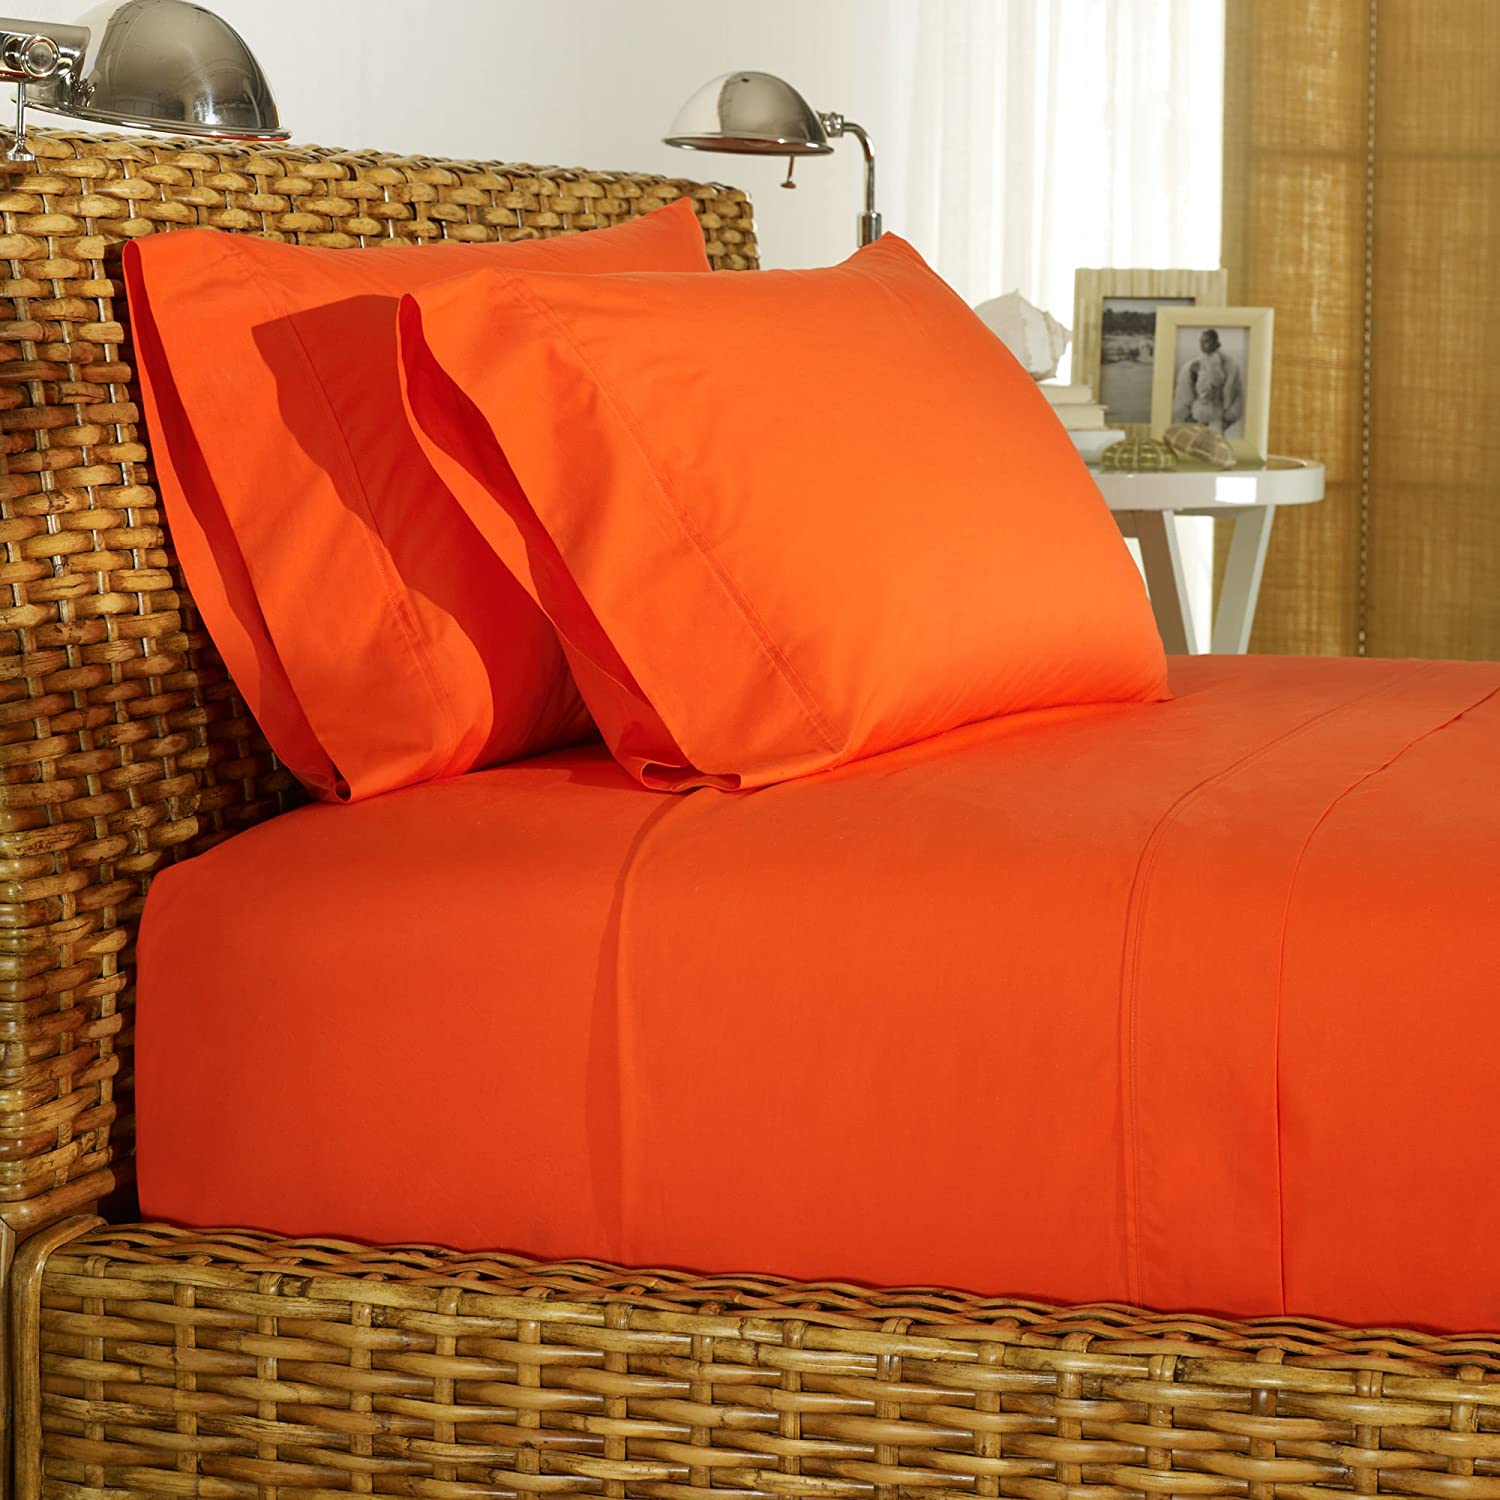 Rajlinen Orange Solid 4 PCs Bed Sheet Set Queen Size Egyptian Cotton